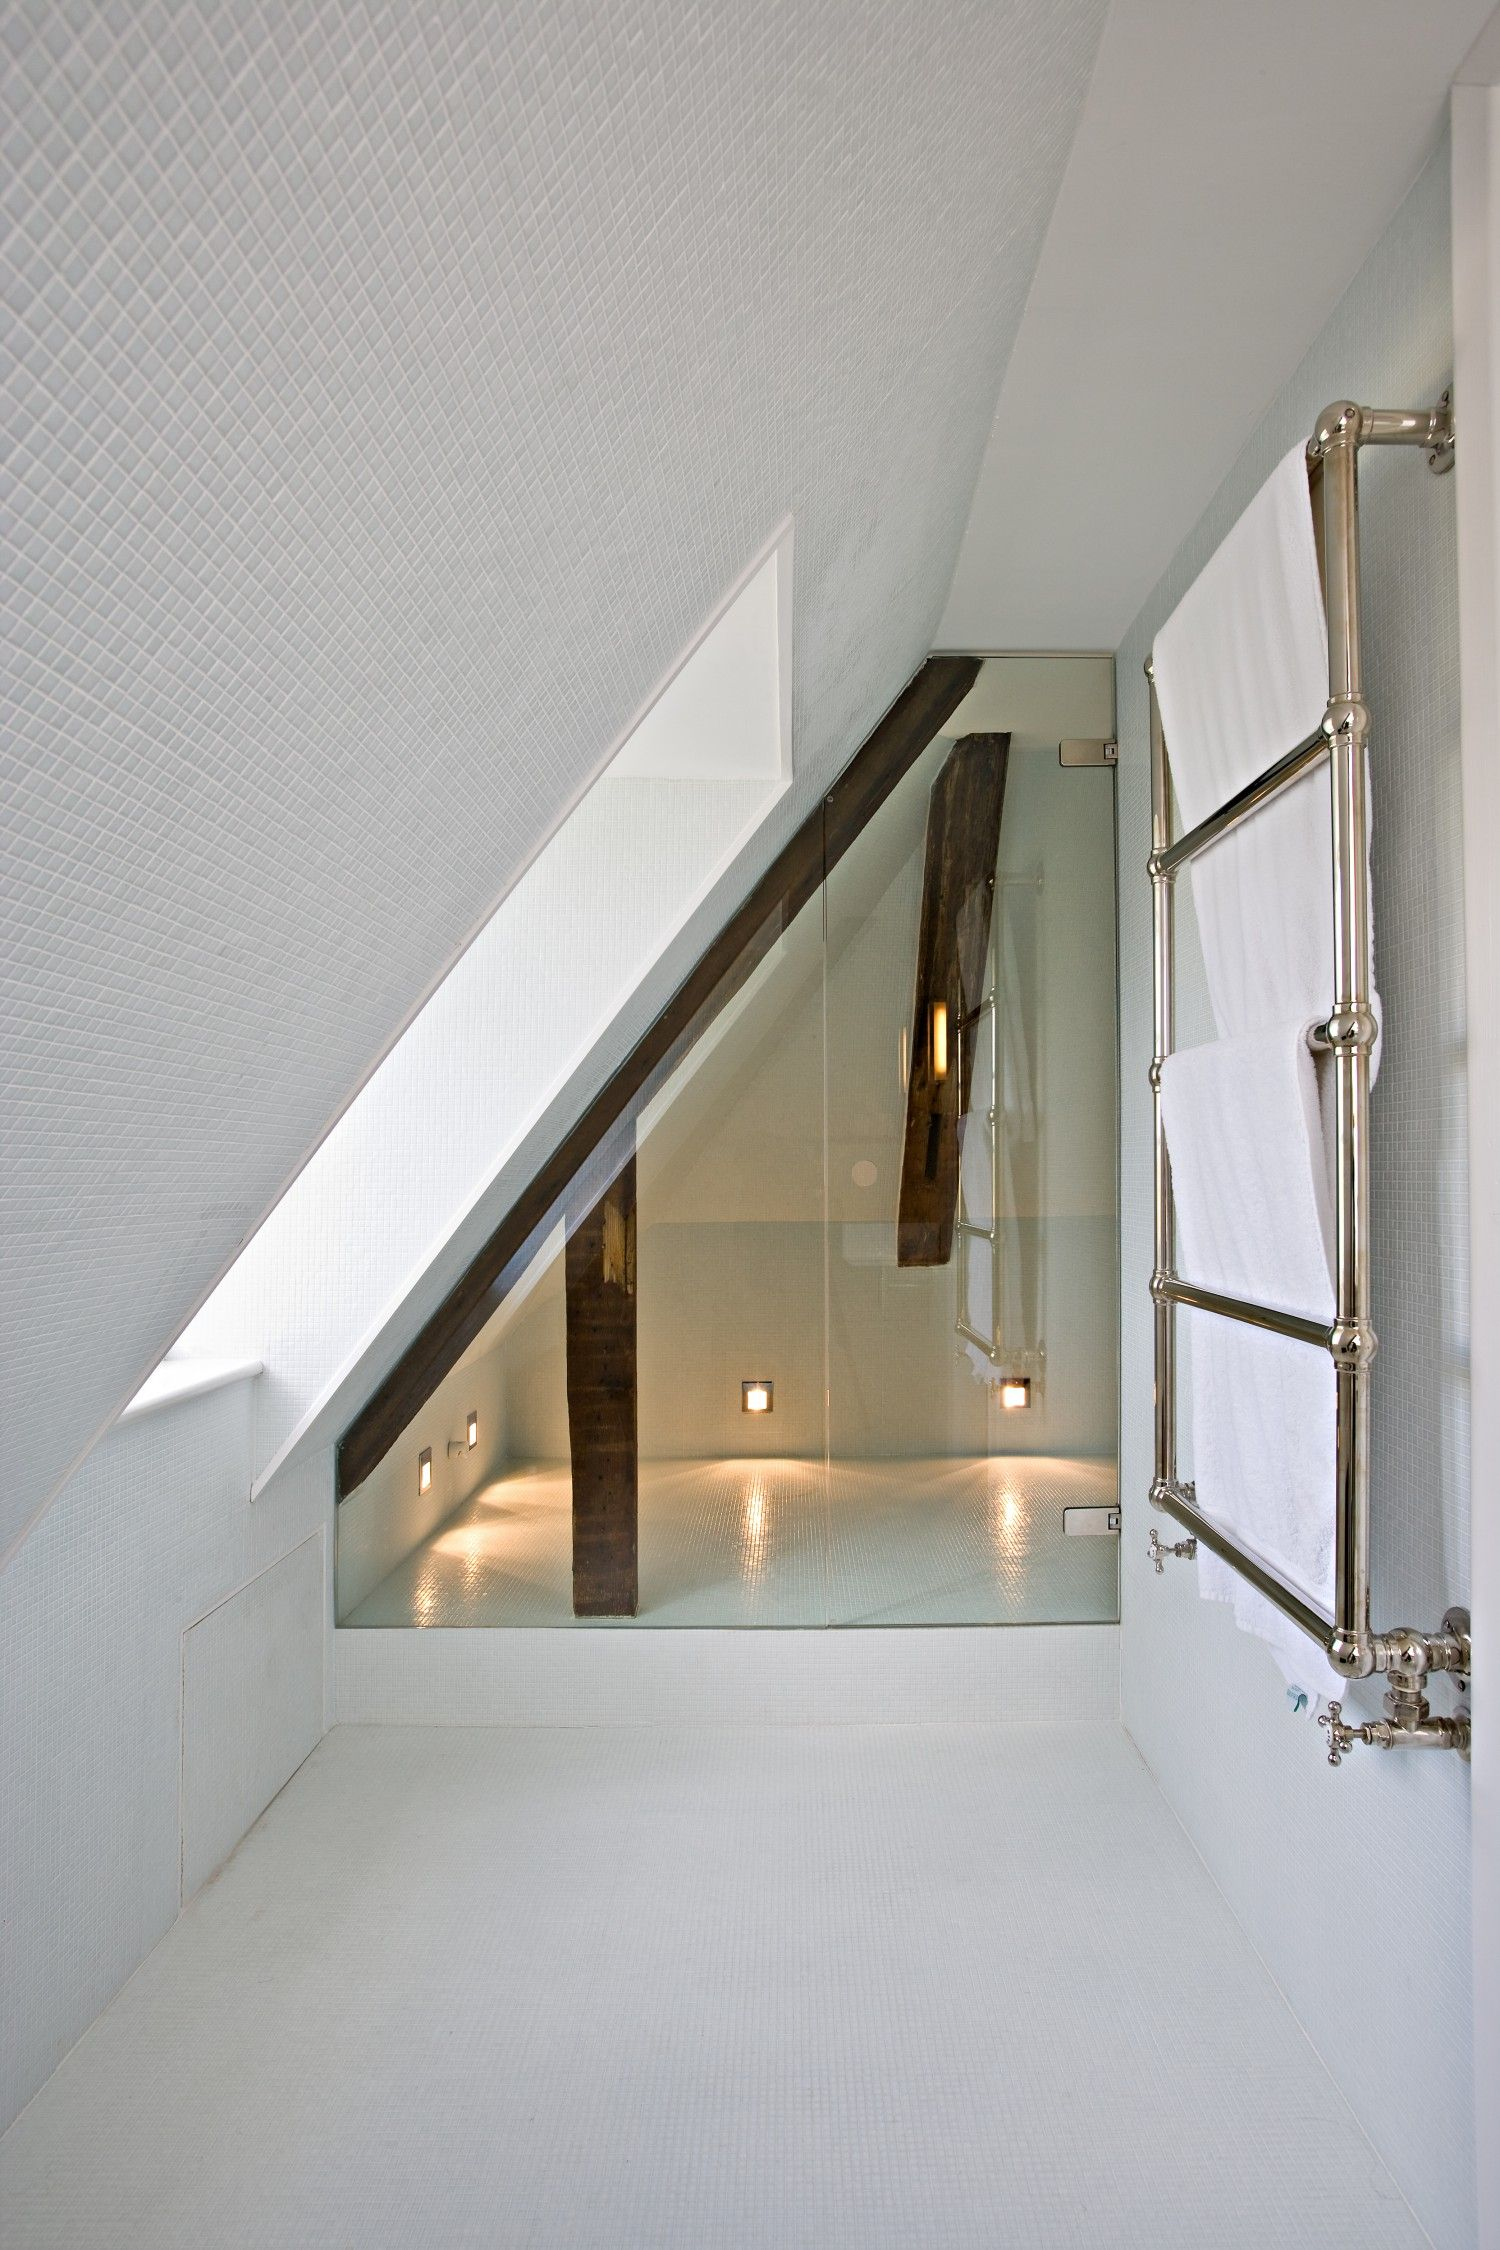 Glass shower sceen slanted for attic ceiling amazing for Bathroom design under eaves